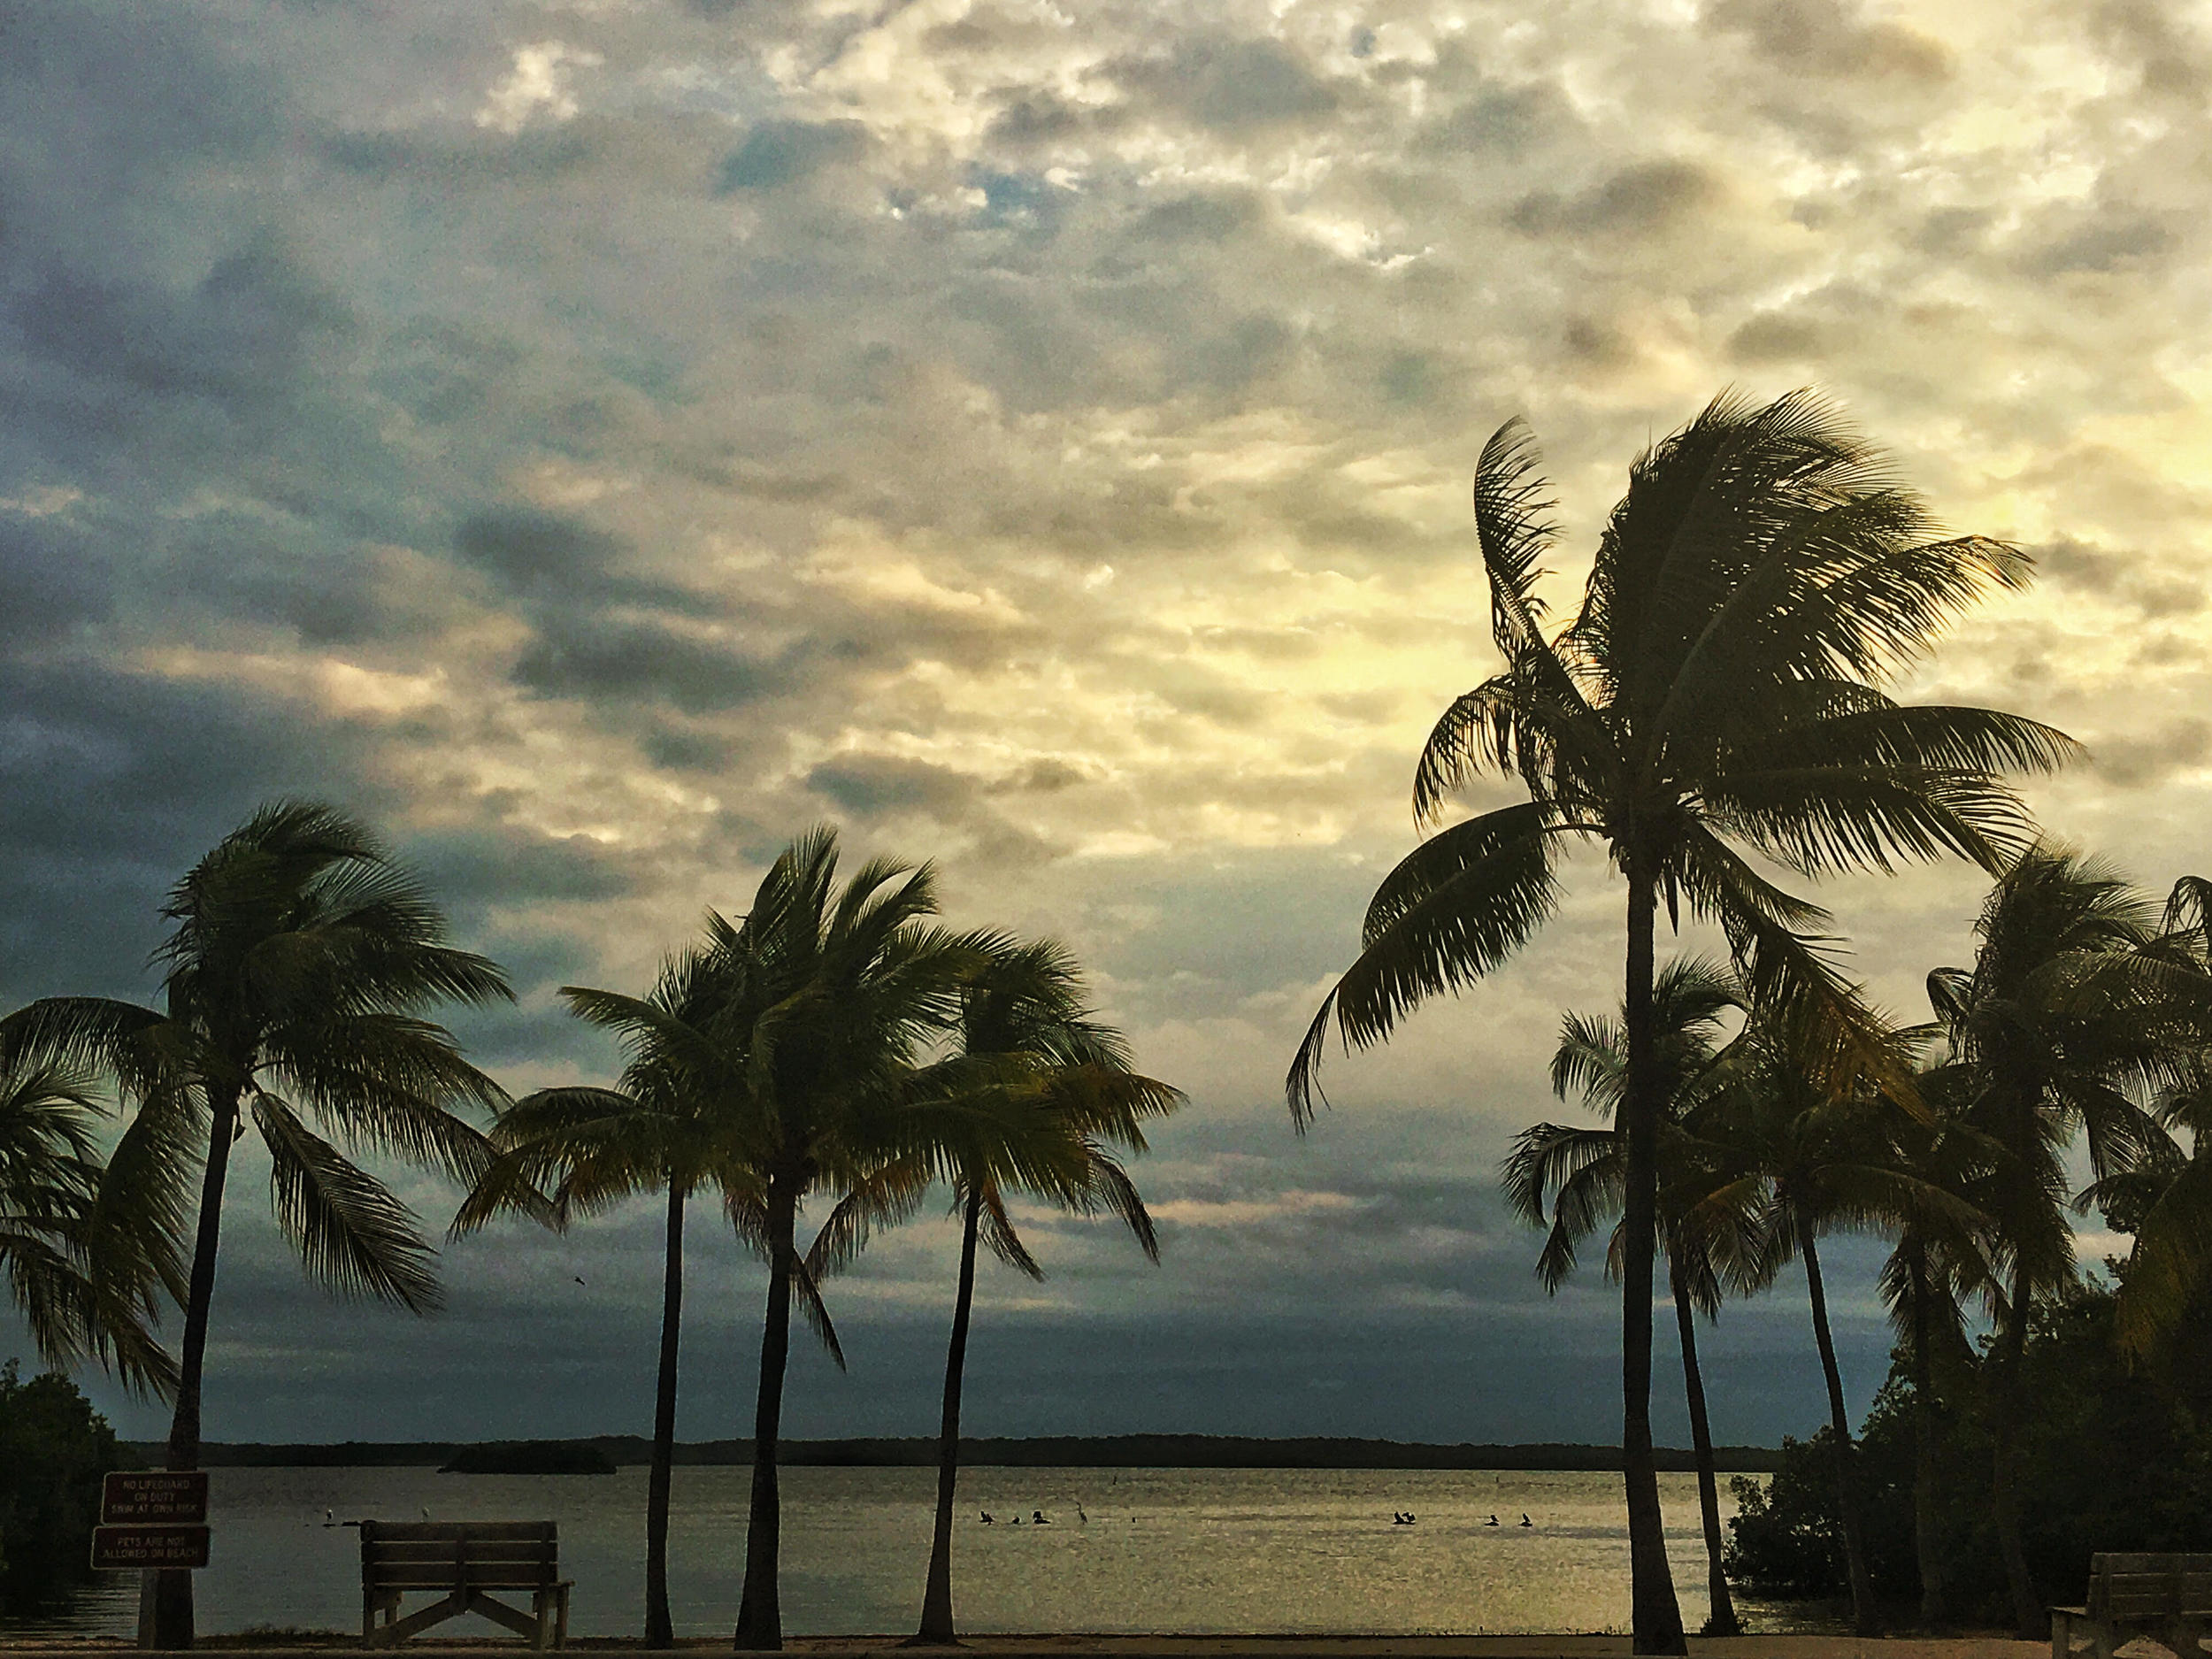 Palm trees at Biscayne National Park. Photo credit: Stefanie Payne